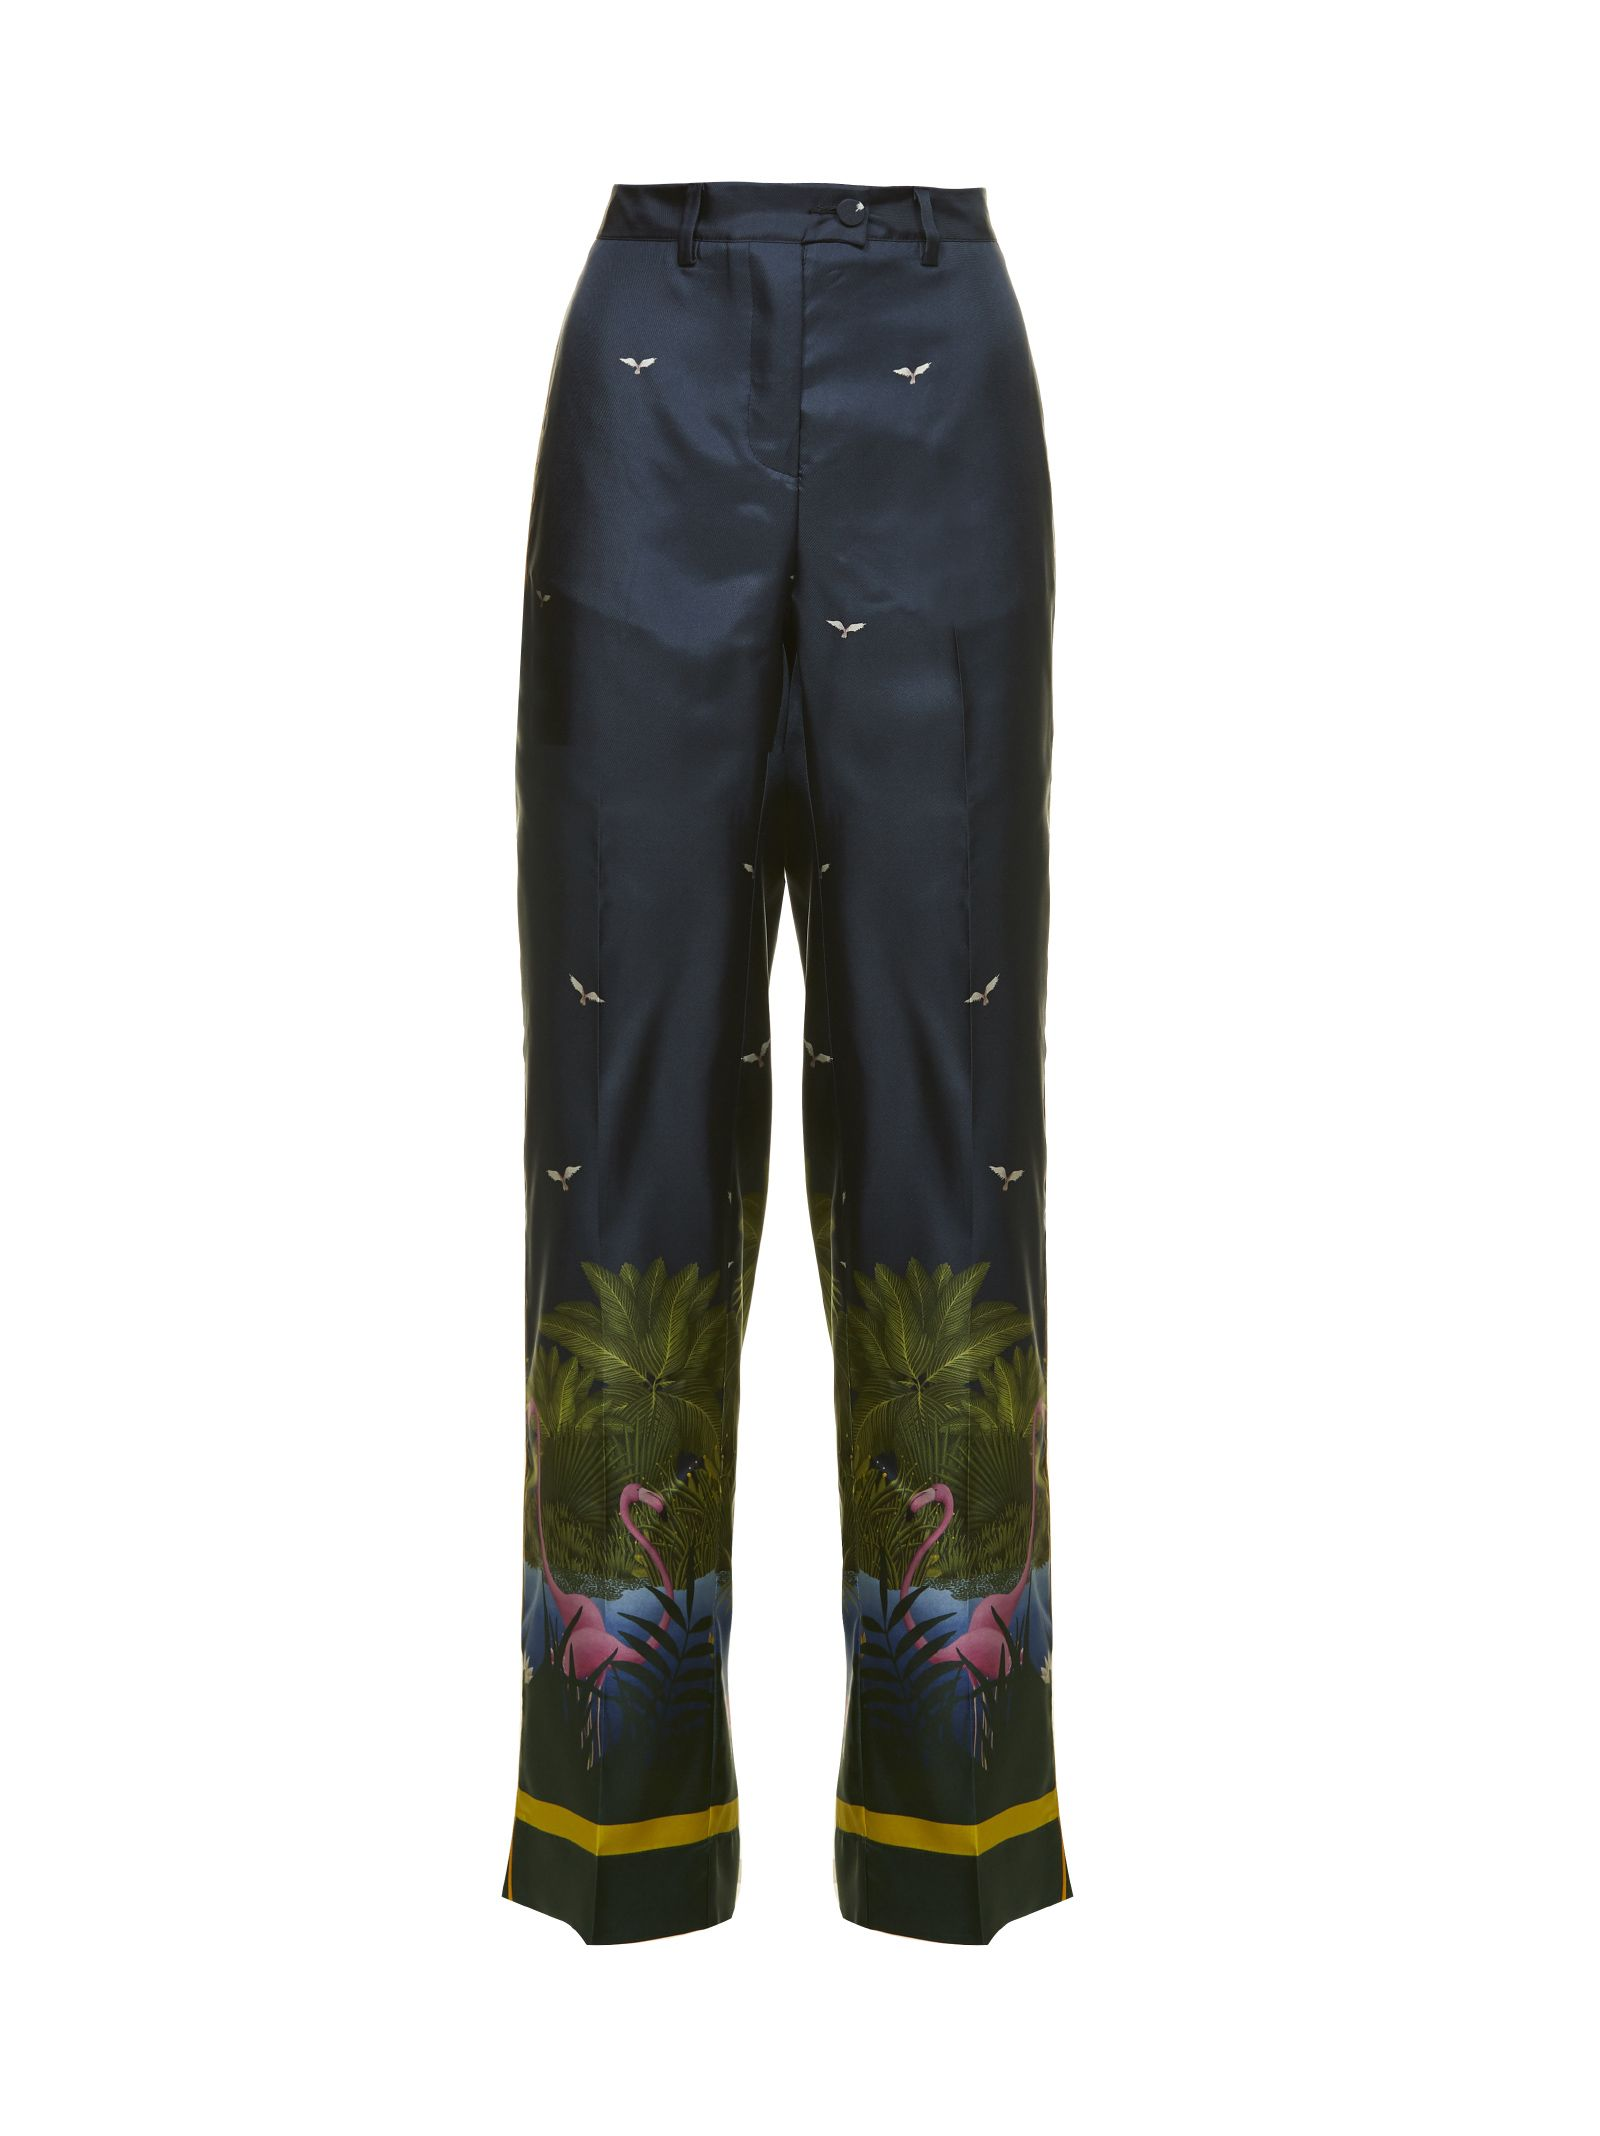 Zelos Trousers From F.r.s For Restless Sleepers: Multicolor Zelos Trousers With Belt Loops, Flared S